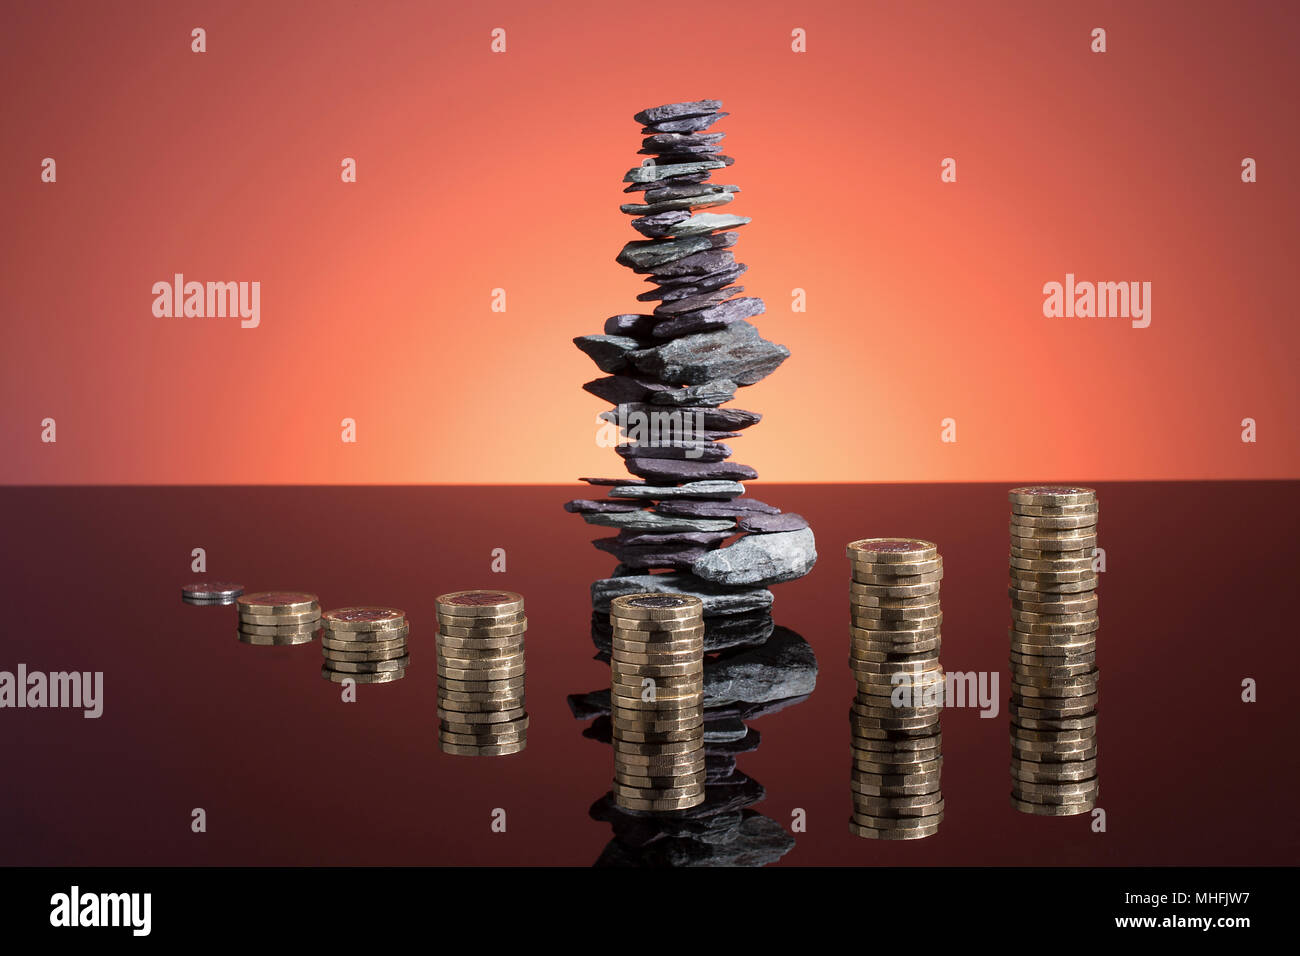 very well placed stone structure represents financial wise growth and rise - Stock Image